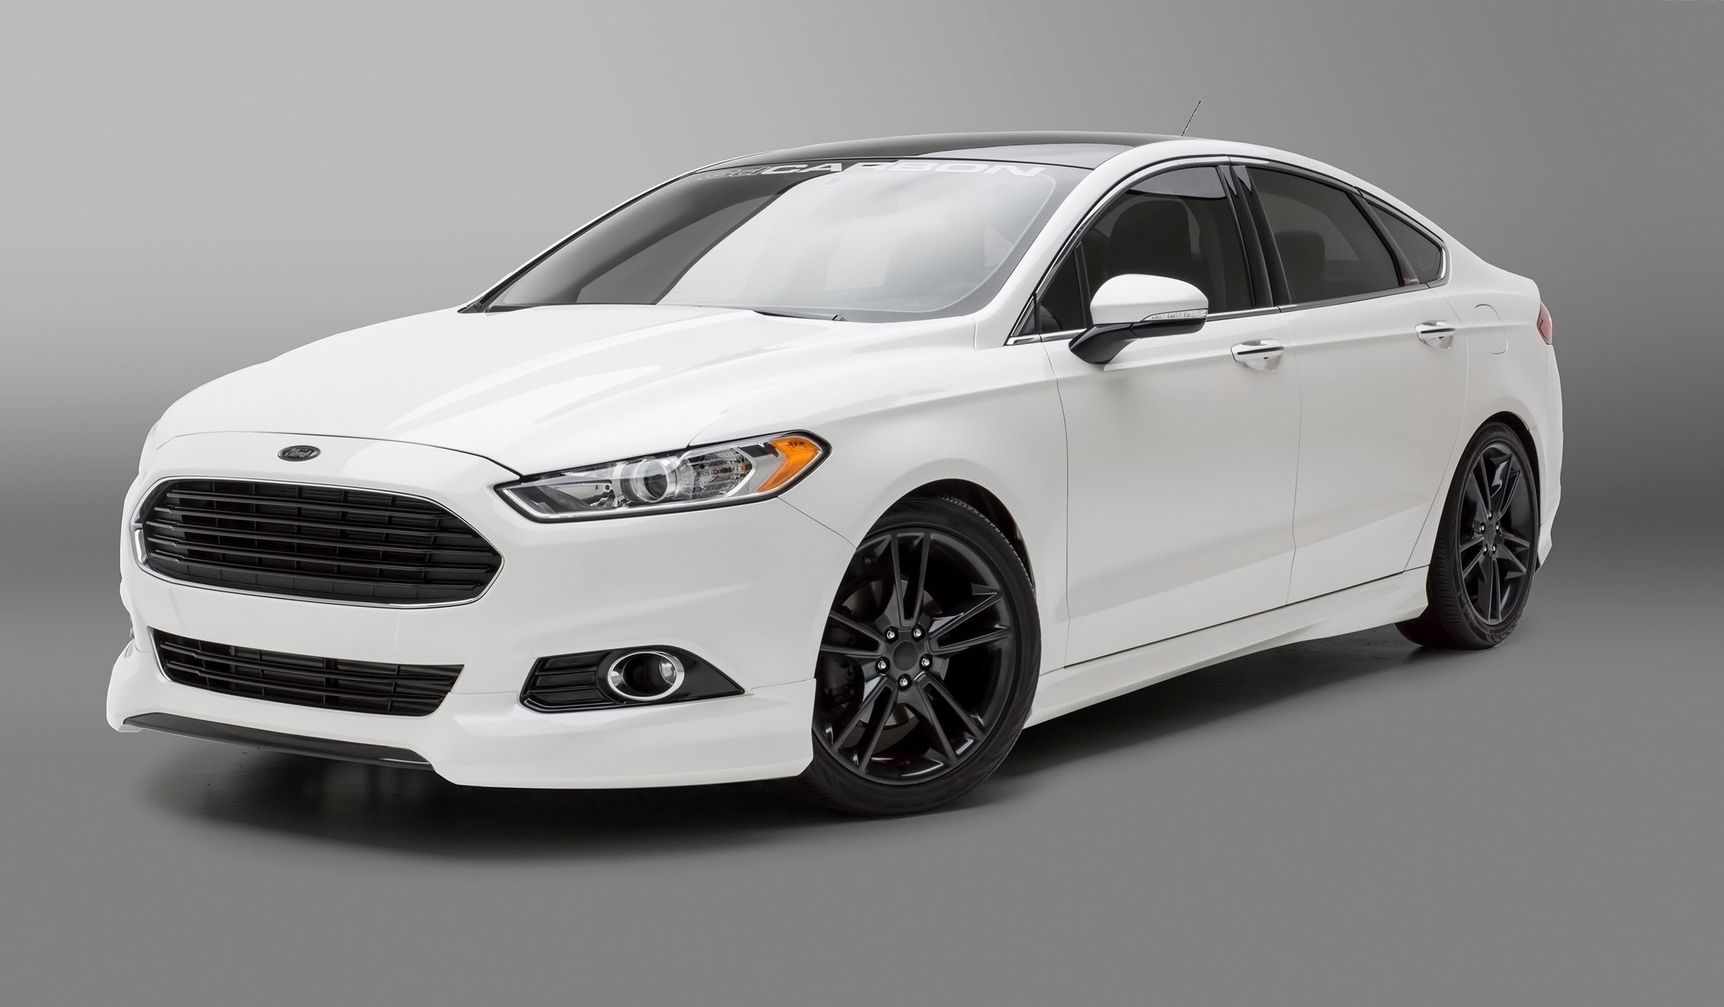 2016 Ford Fusion Hybrid Wallpapers Ford Fusion Ford Car Ford